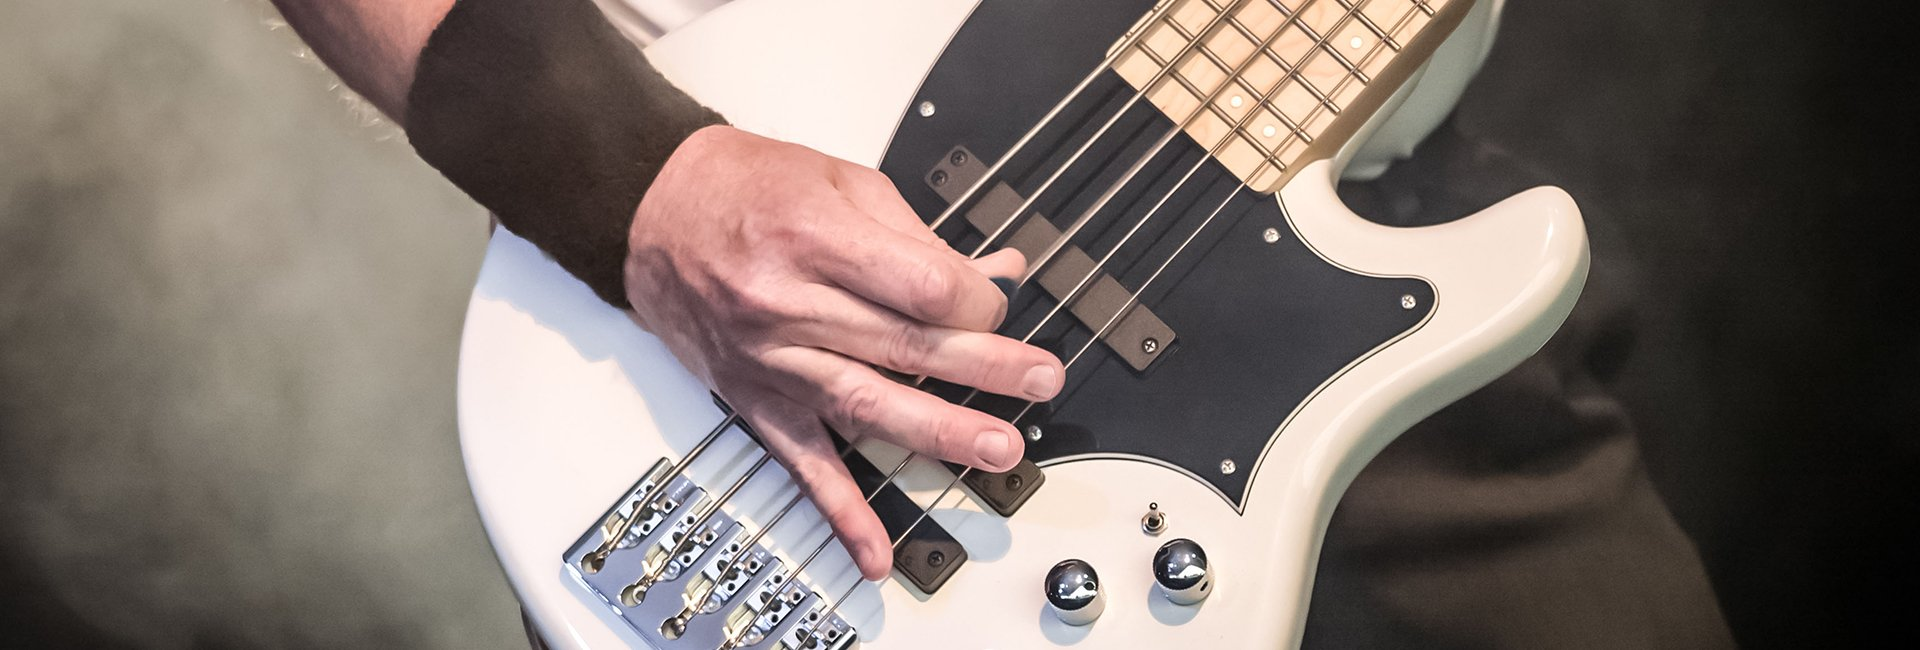 close up of wristbanded musician picking white bass guitar